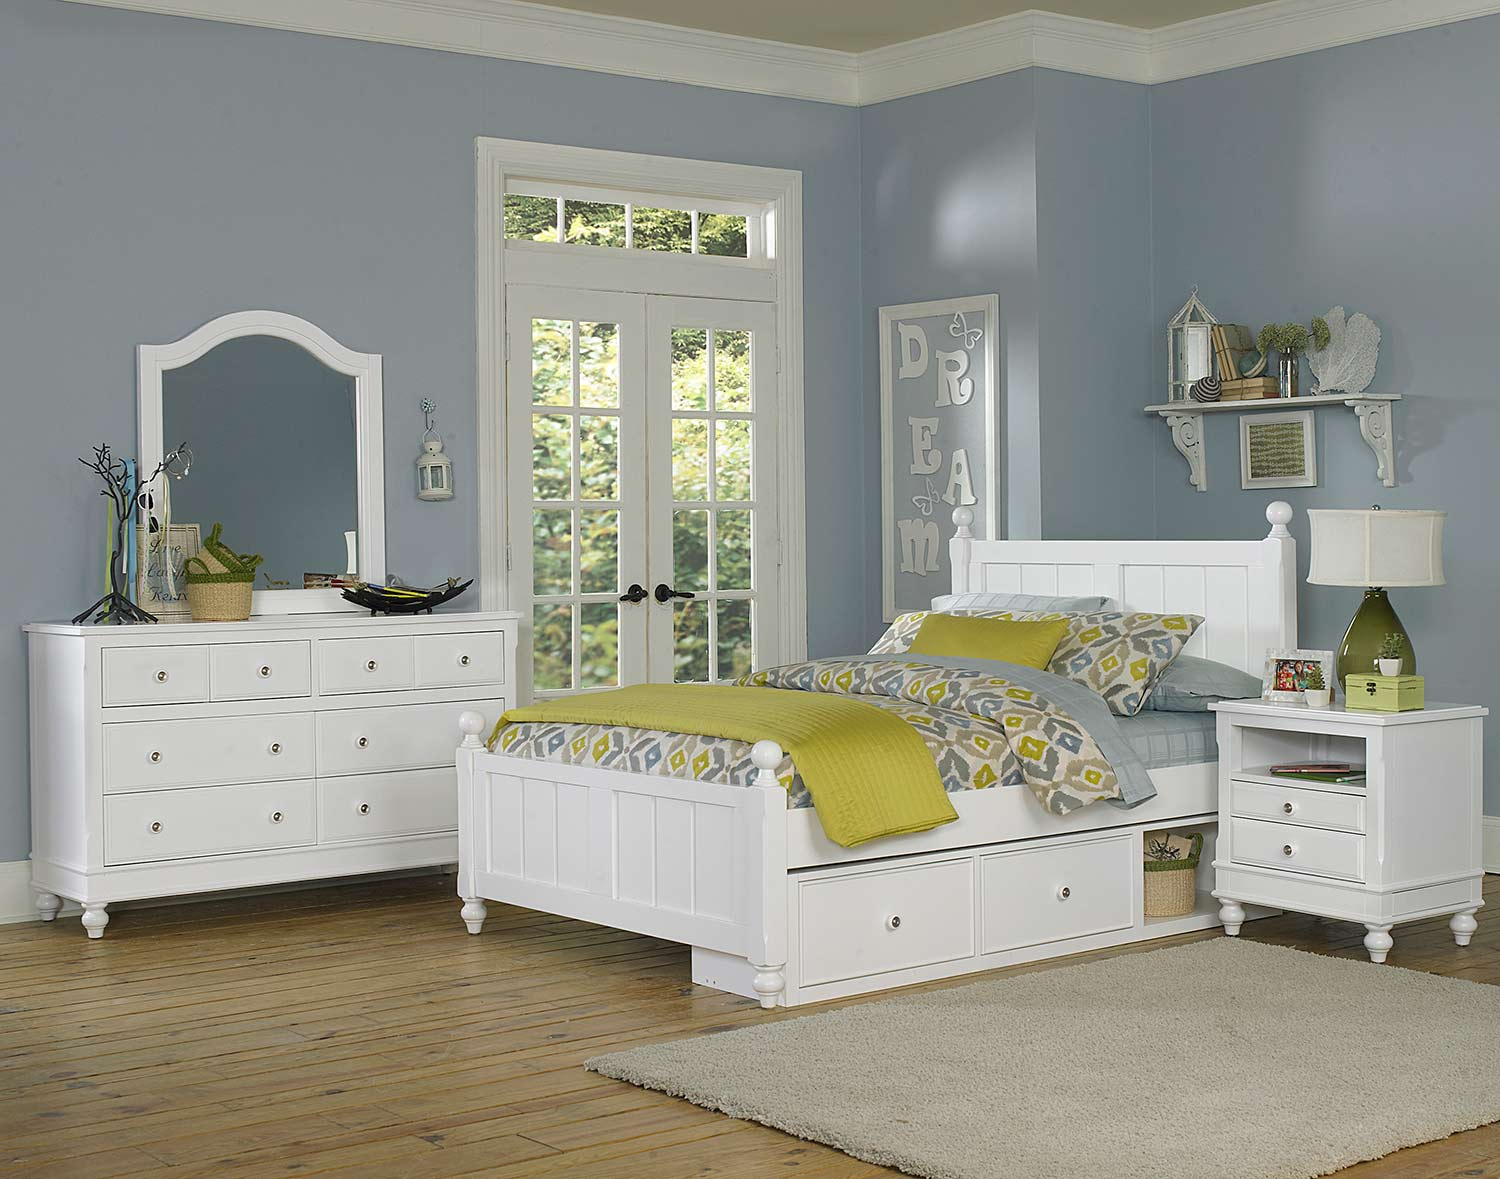 NE Kids Lake House Kennedy Bedroom Set With Storage - White